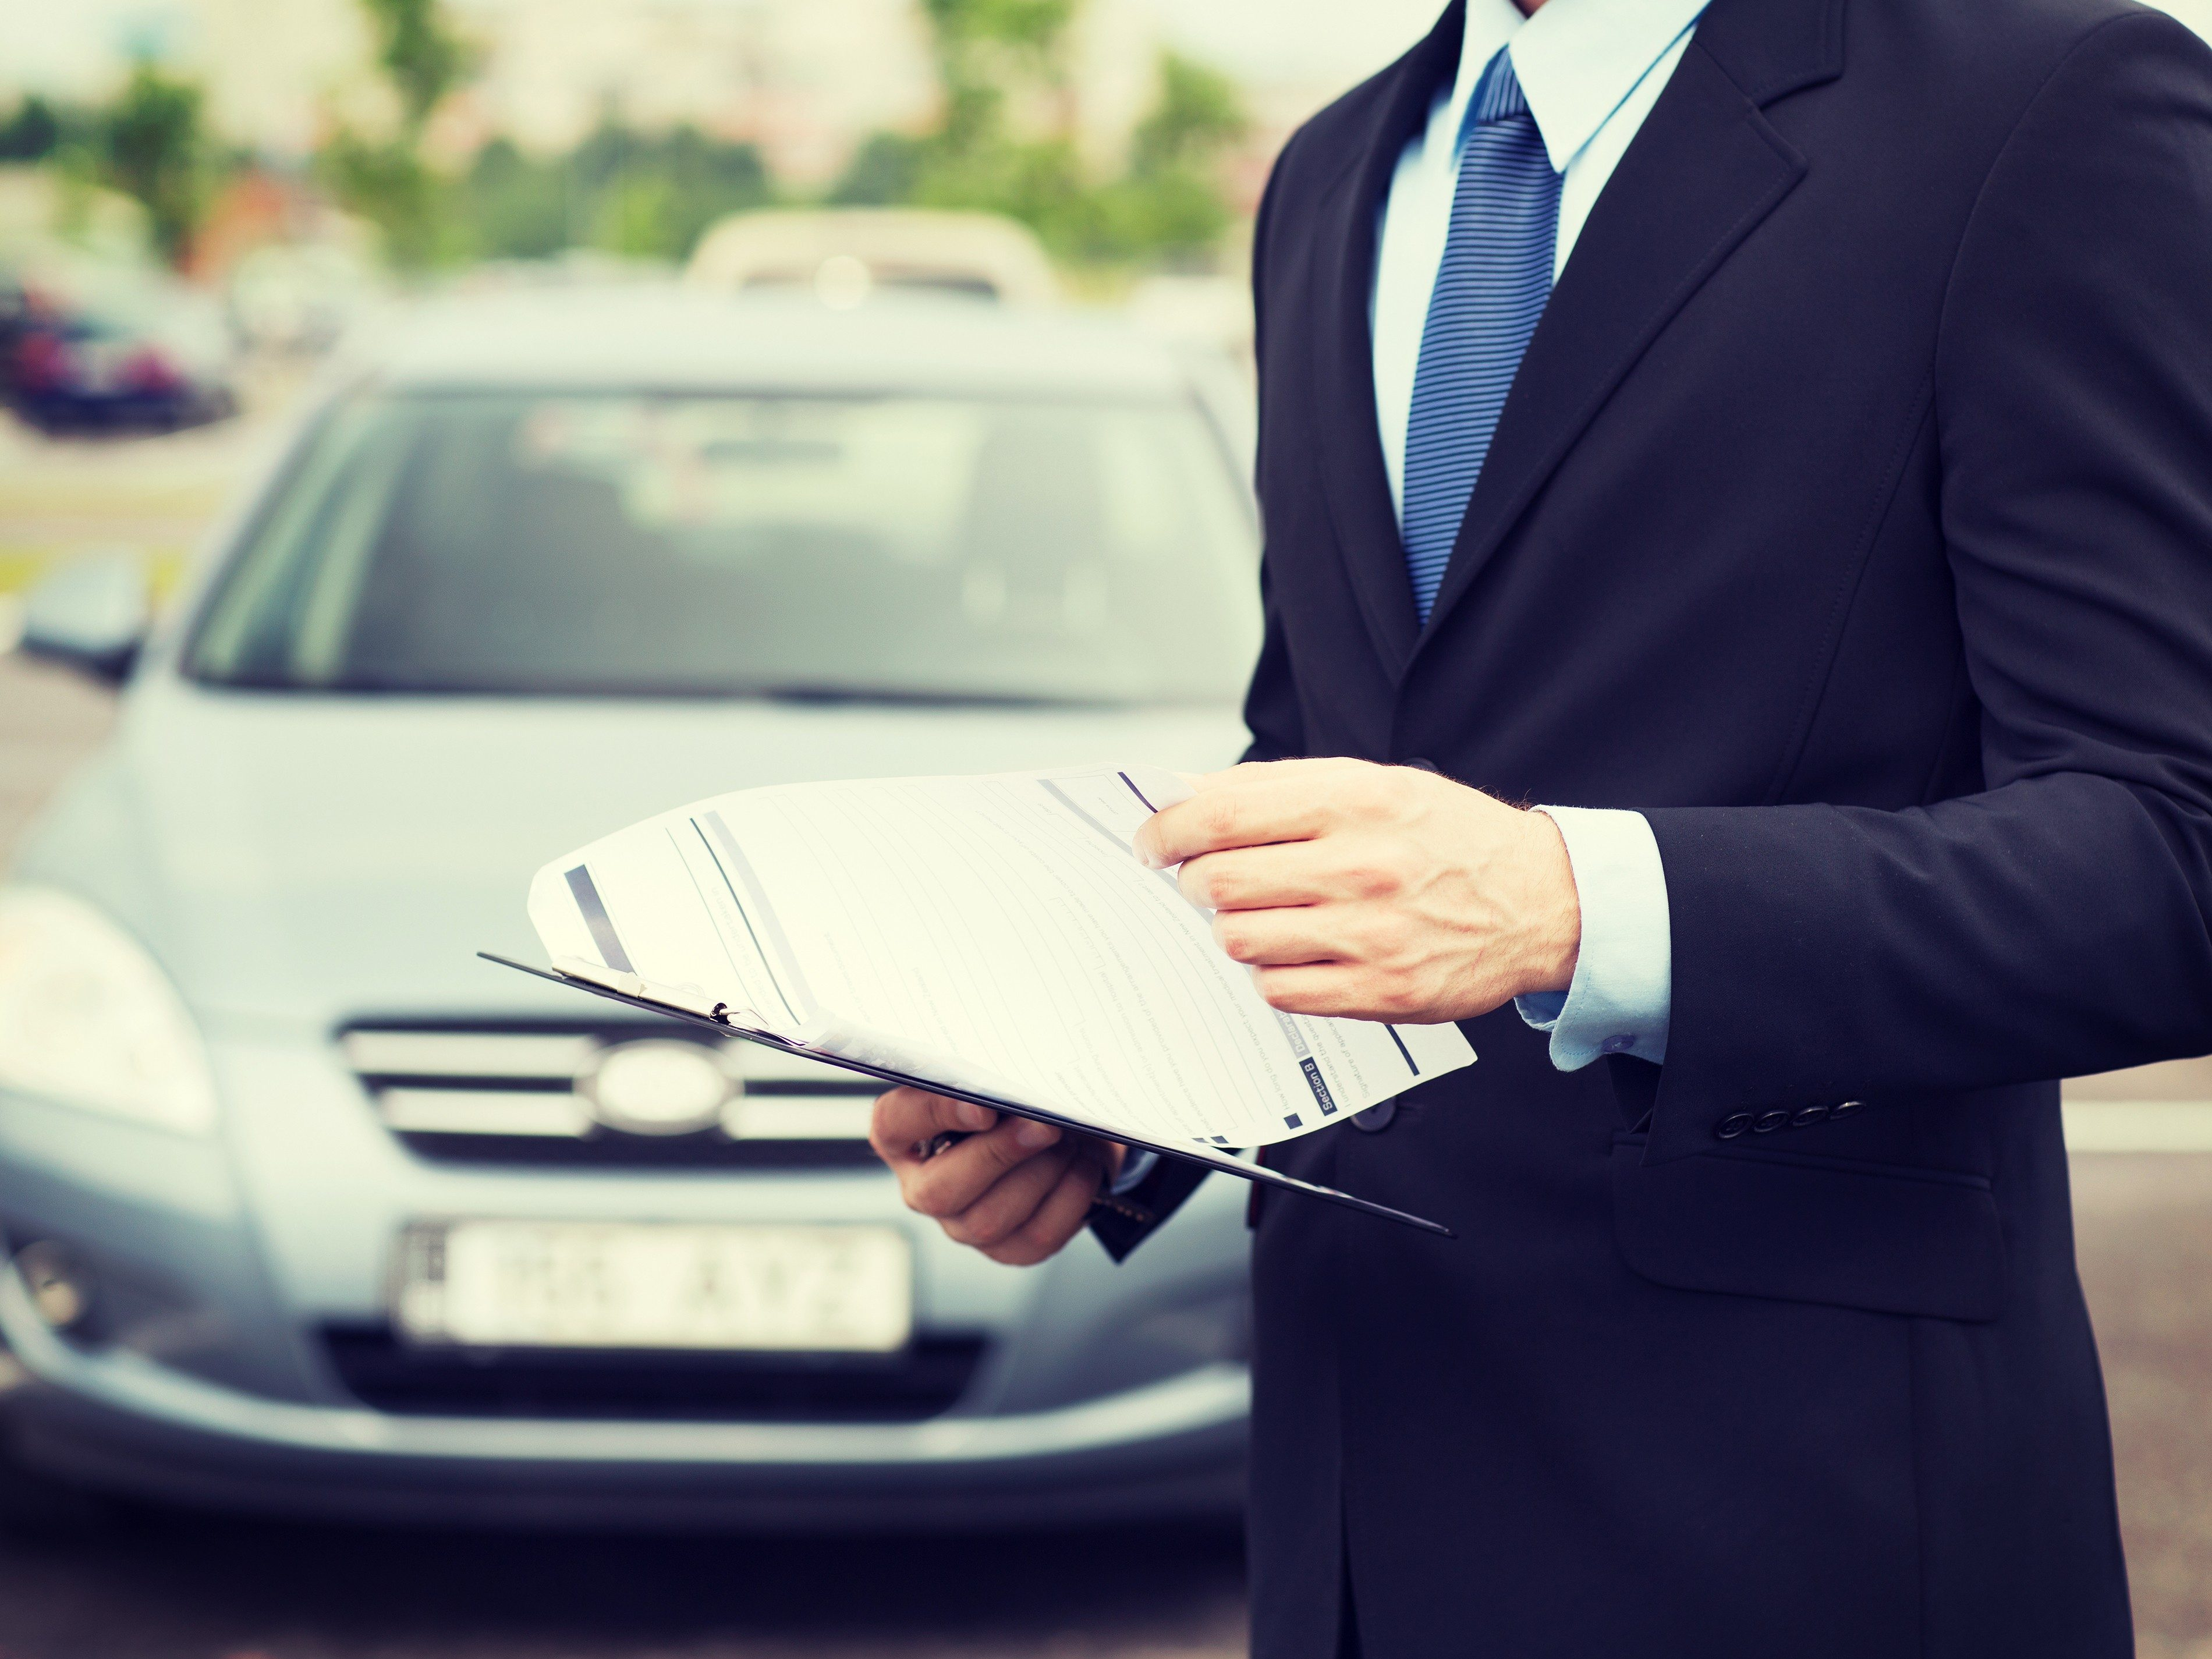 Leasing A Car Vs Buying A Car: 4 Things You Need To Know About Leasing A Car